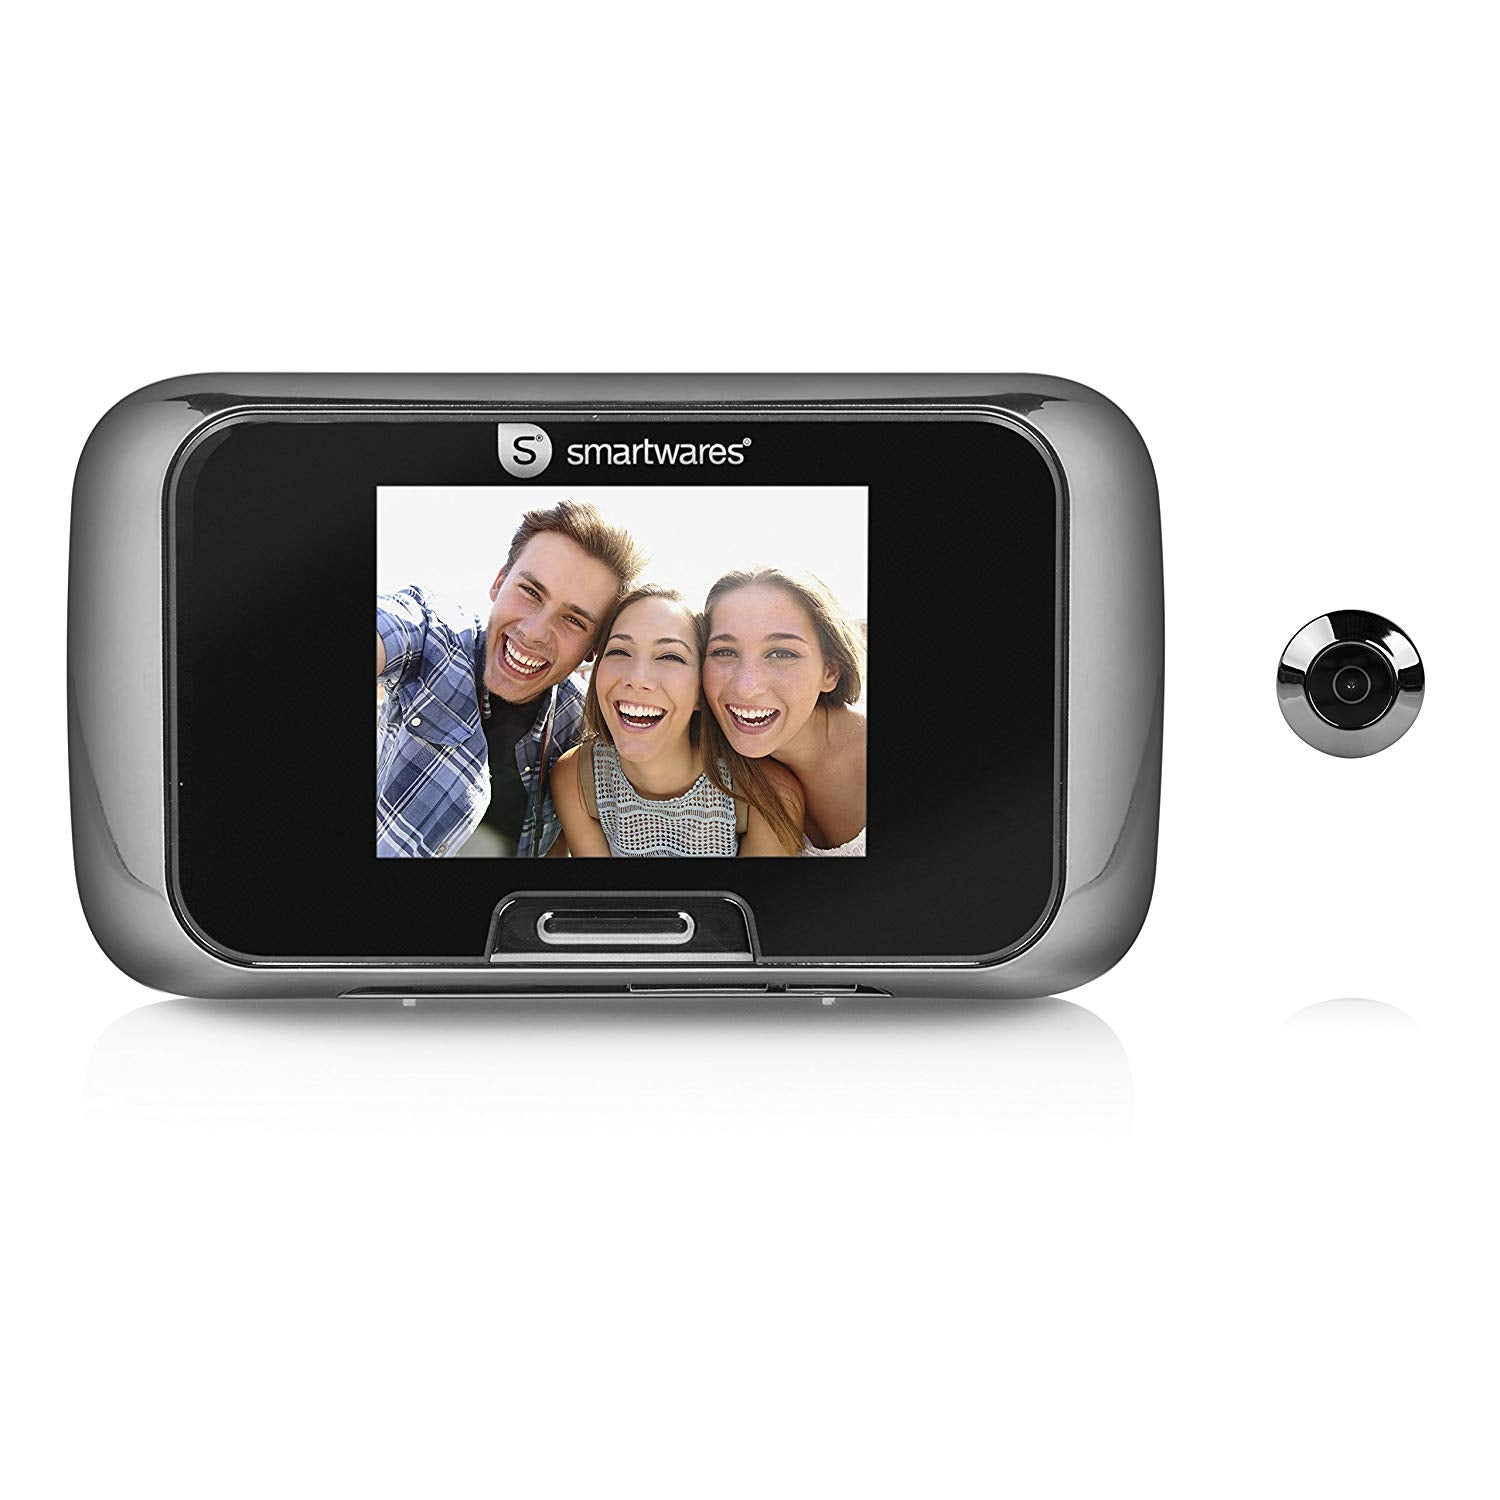 "Smartwares VD27 Door viewer – Camera – 2,8"" color LCD display – Battery powered"